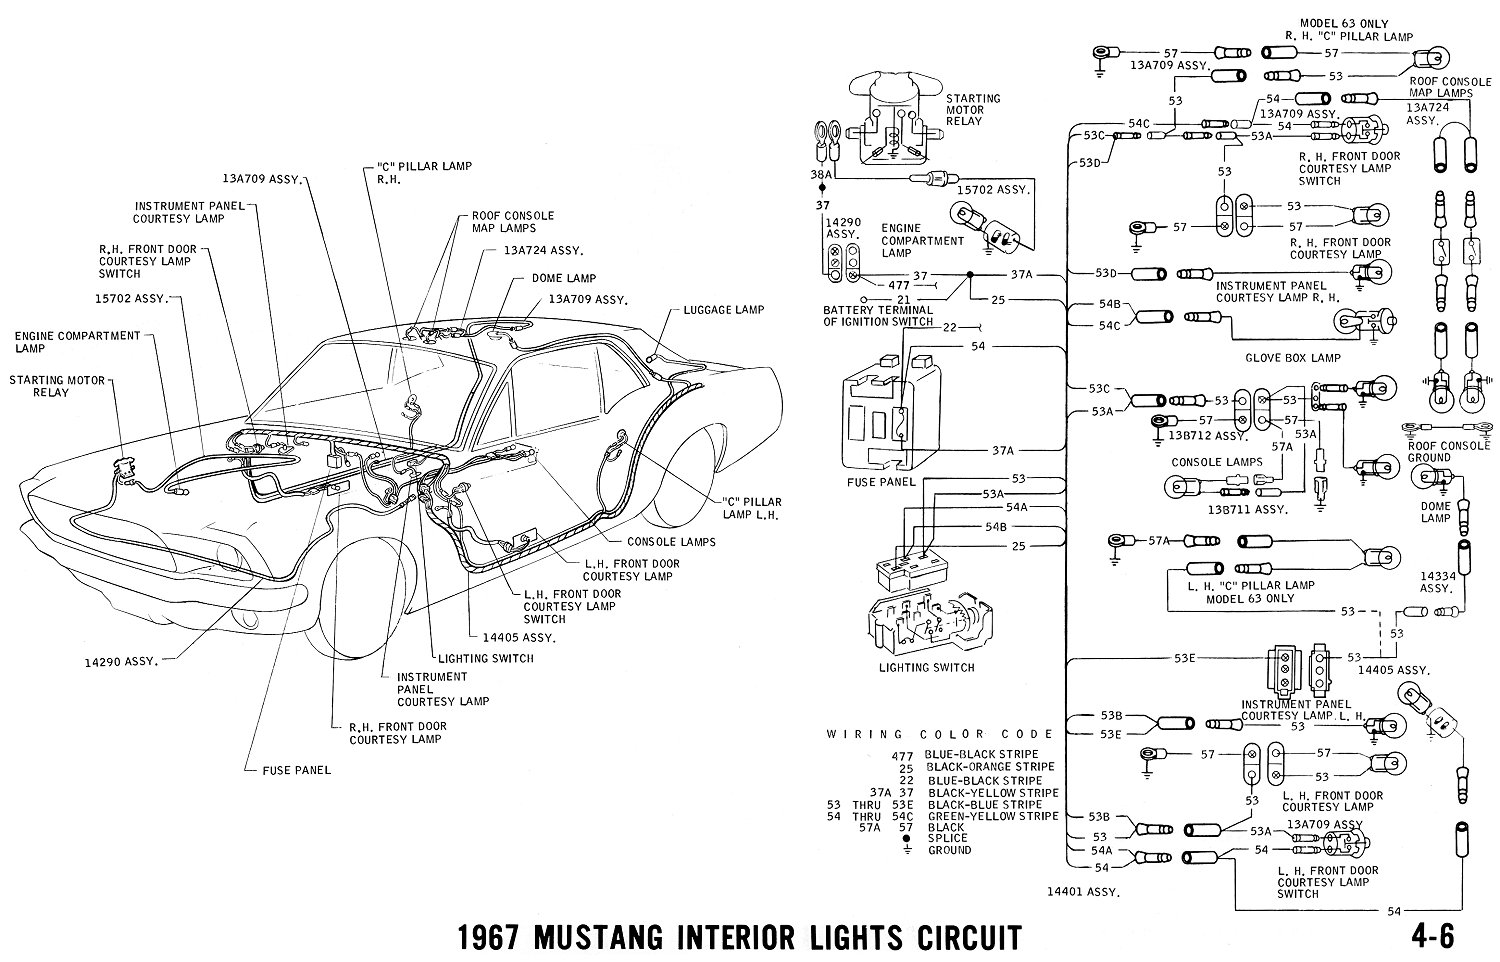 hight resolution of 1967 mustang cluster wiring schematic wiring diagram rows1967 mustang wiring and vacuum diagrams average joe restoration